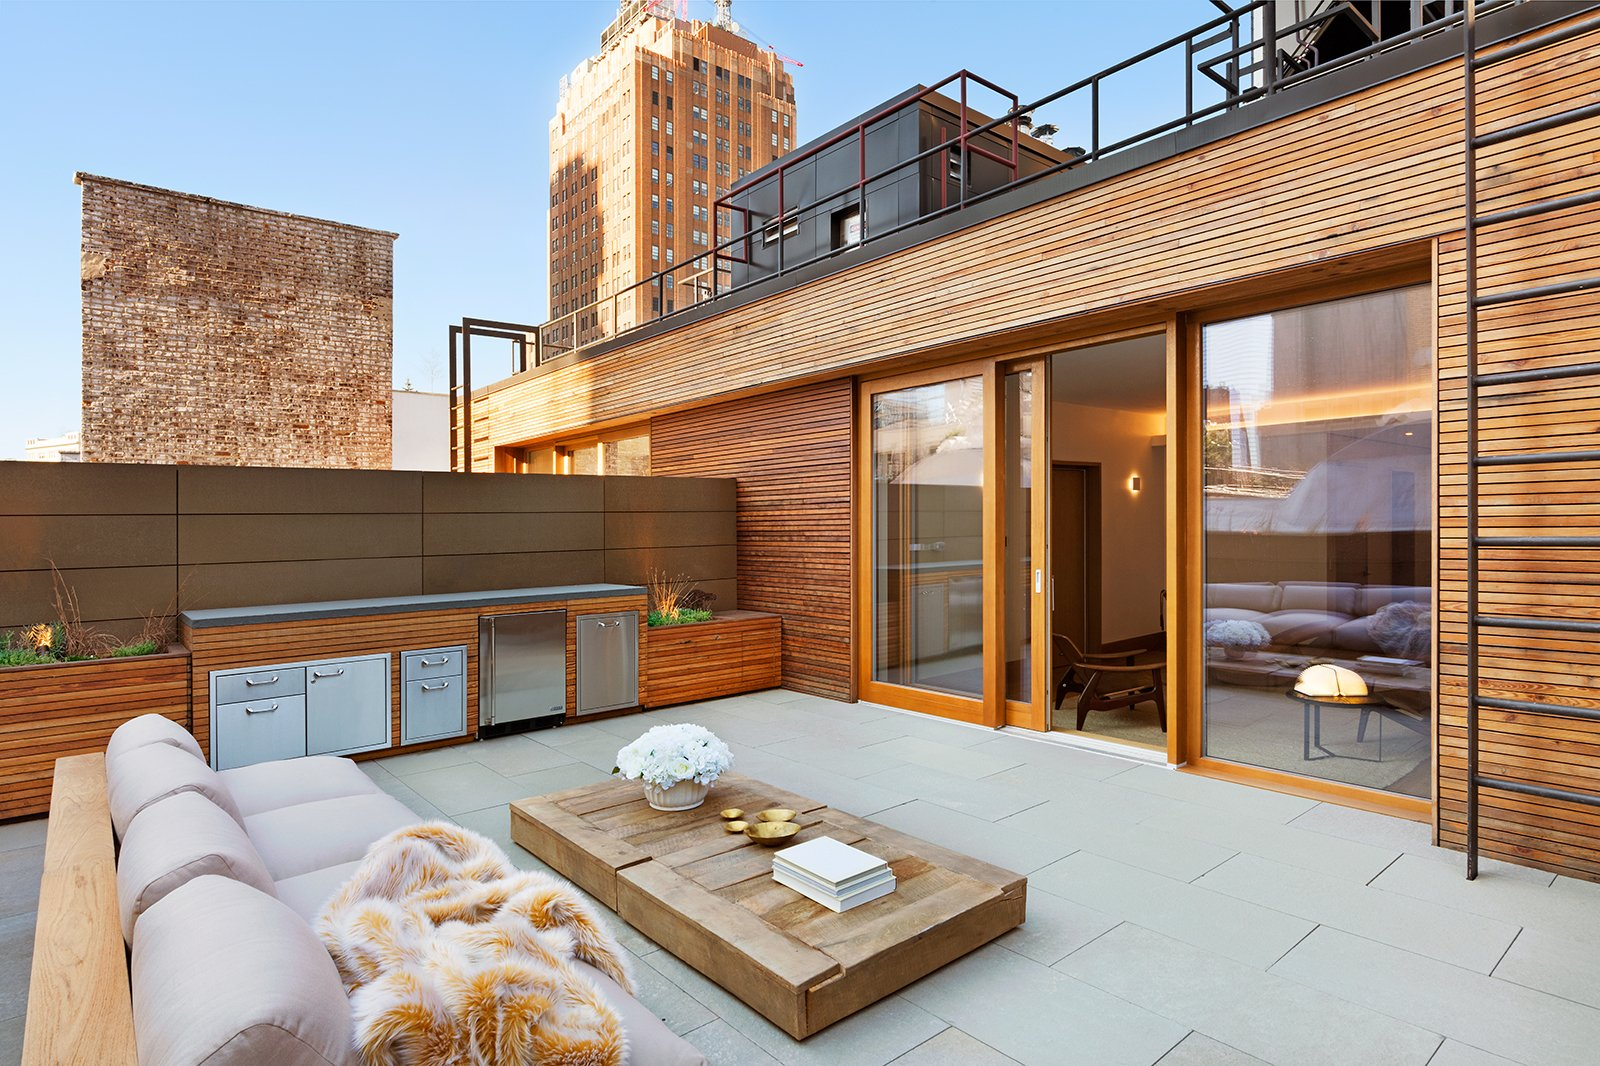 Outdoor Deck features Zola Lift & Slide Door offering outstanding thermal and acoustic performance while showcasing expansive views of downtown Manhattan. An Historic TriBeCa Building Reborn by Zola Windows